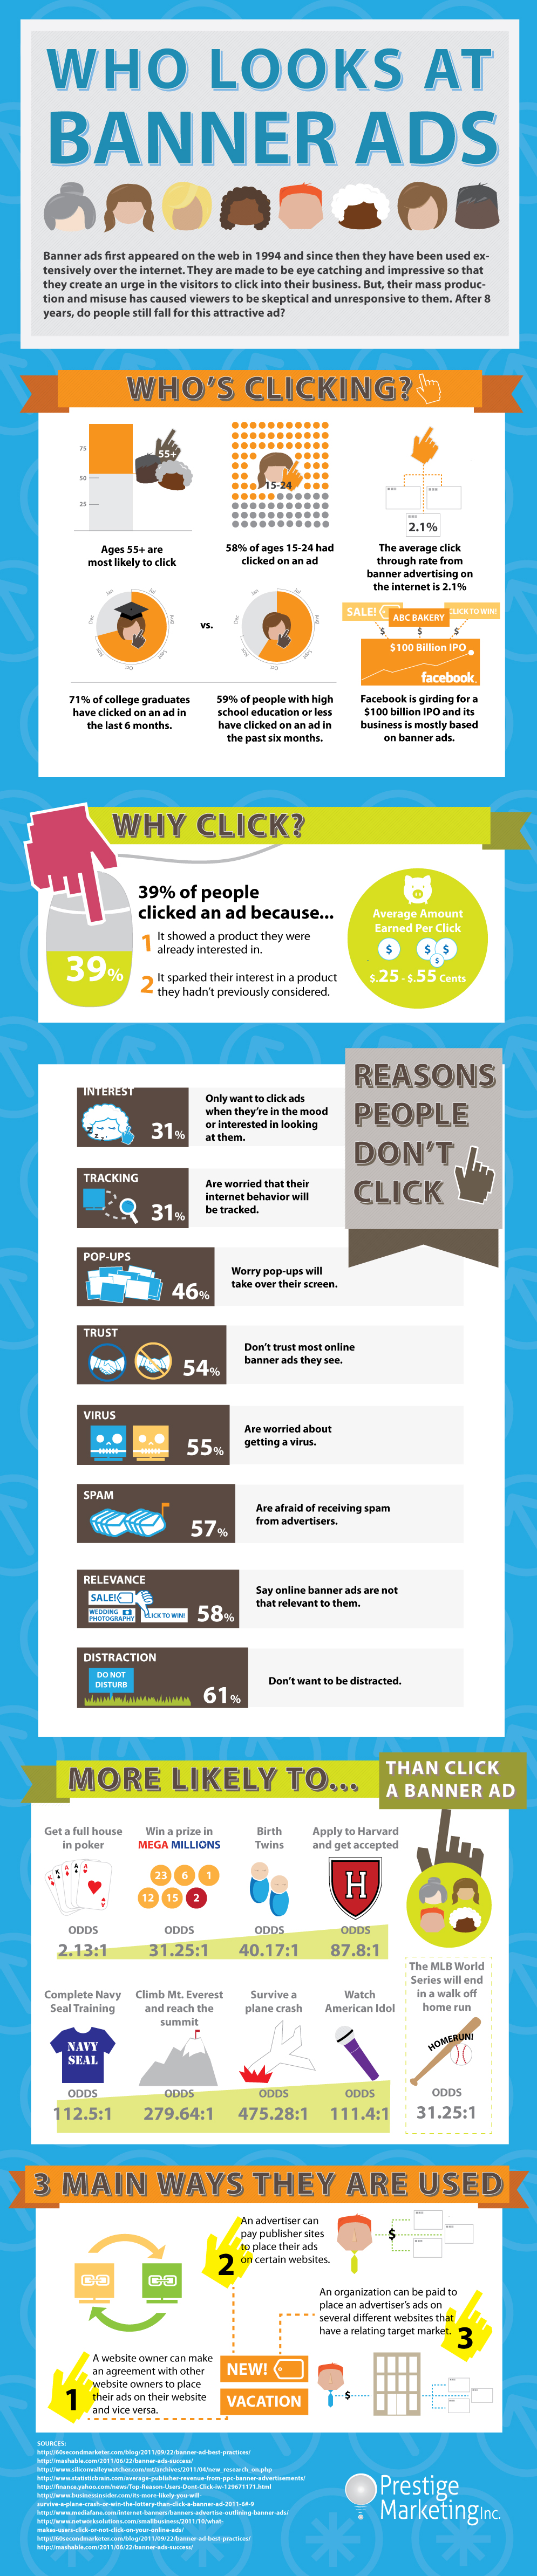 Who Looks at Banner Ads Infographic